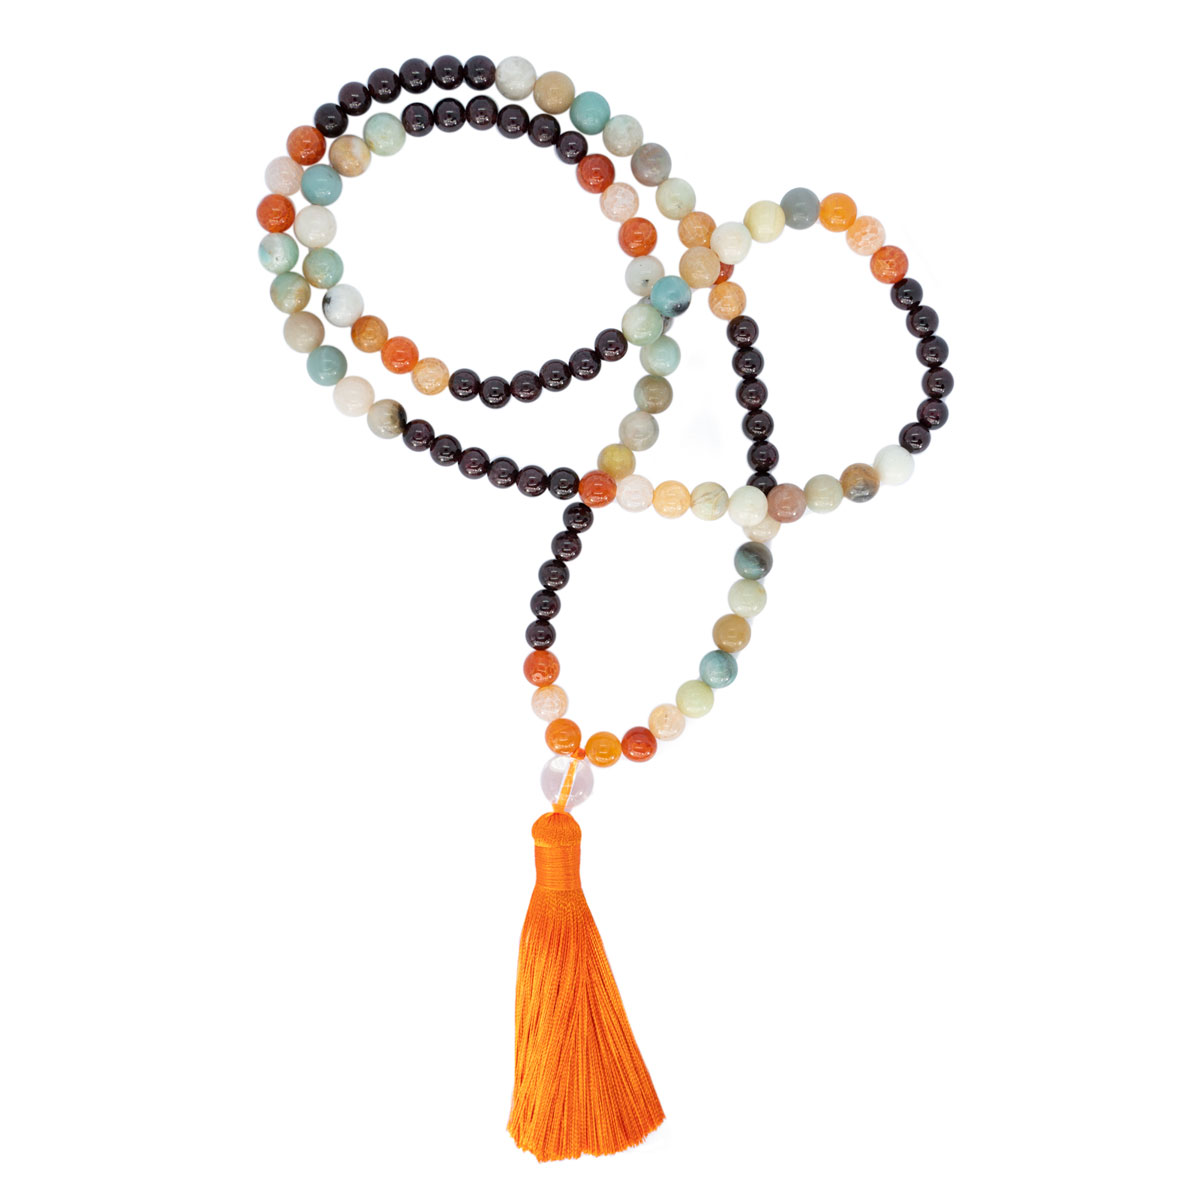 Sri Avinash Blessed™ Garnet, Onyx & Amazonite Mala Necklace